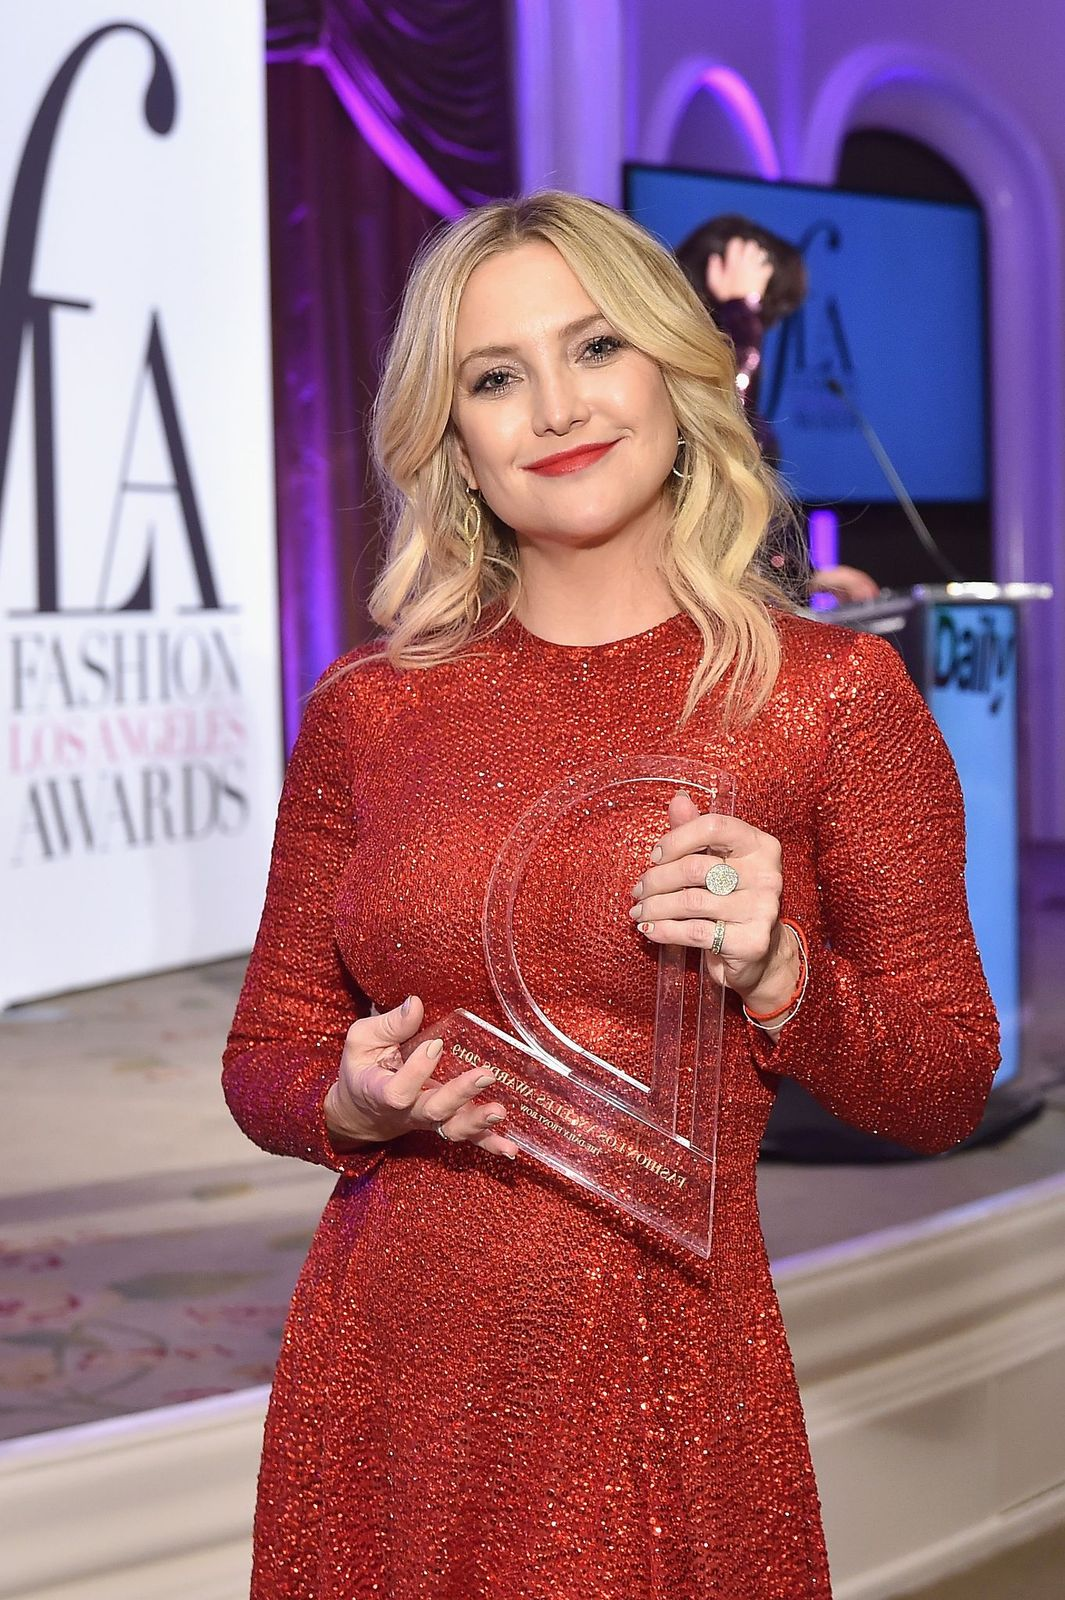 Kate Hudson at The Daily Front Row Fashion Los Angeles Awards on March 17, 2019, in California | Photo: Stefanie Keenan/Getty Images